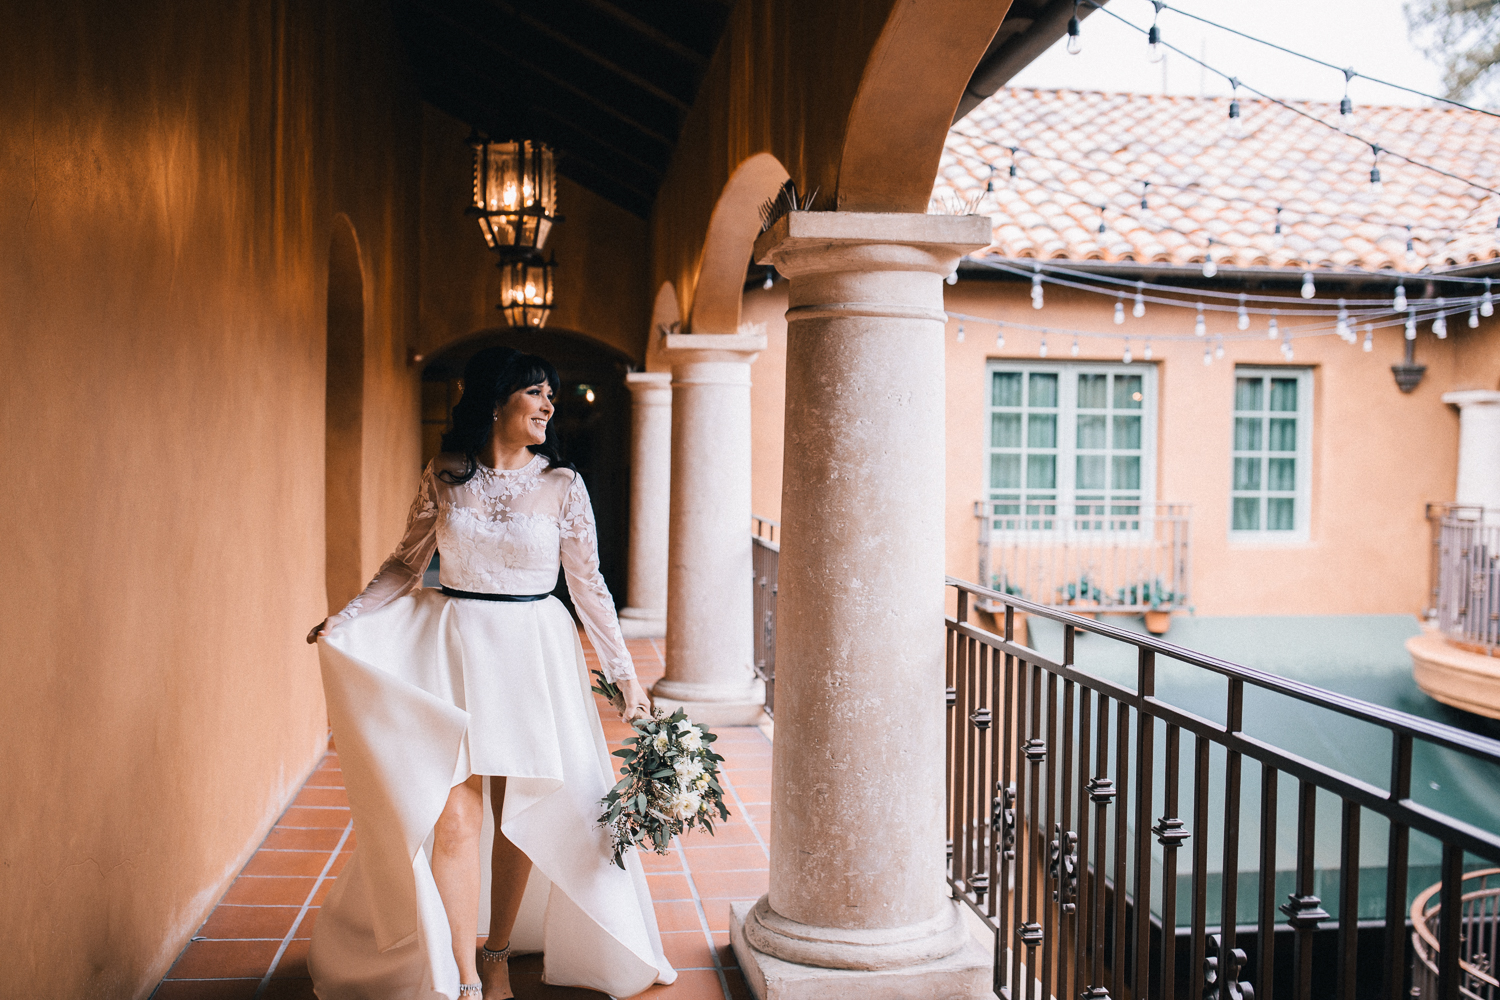 2019_05_ 182019.05.19 Lisa + Eddie South Bay Wedding Blog Photos Edited For Web 0059.jpg